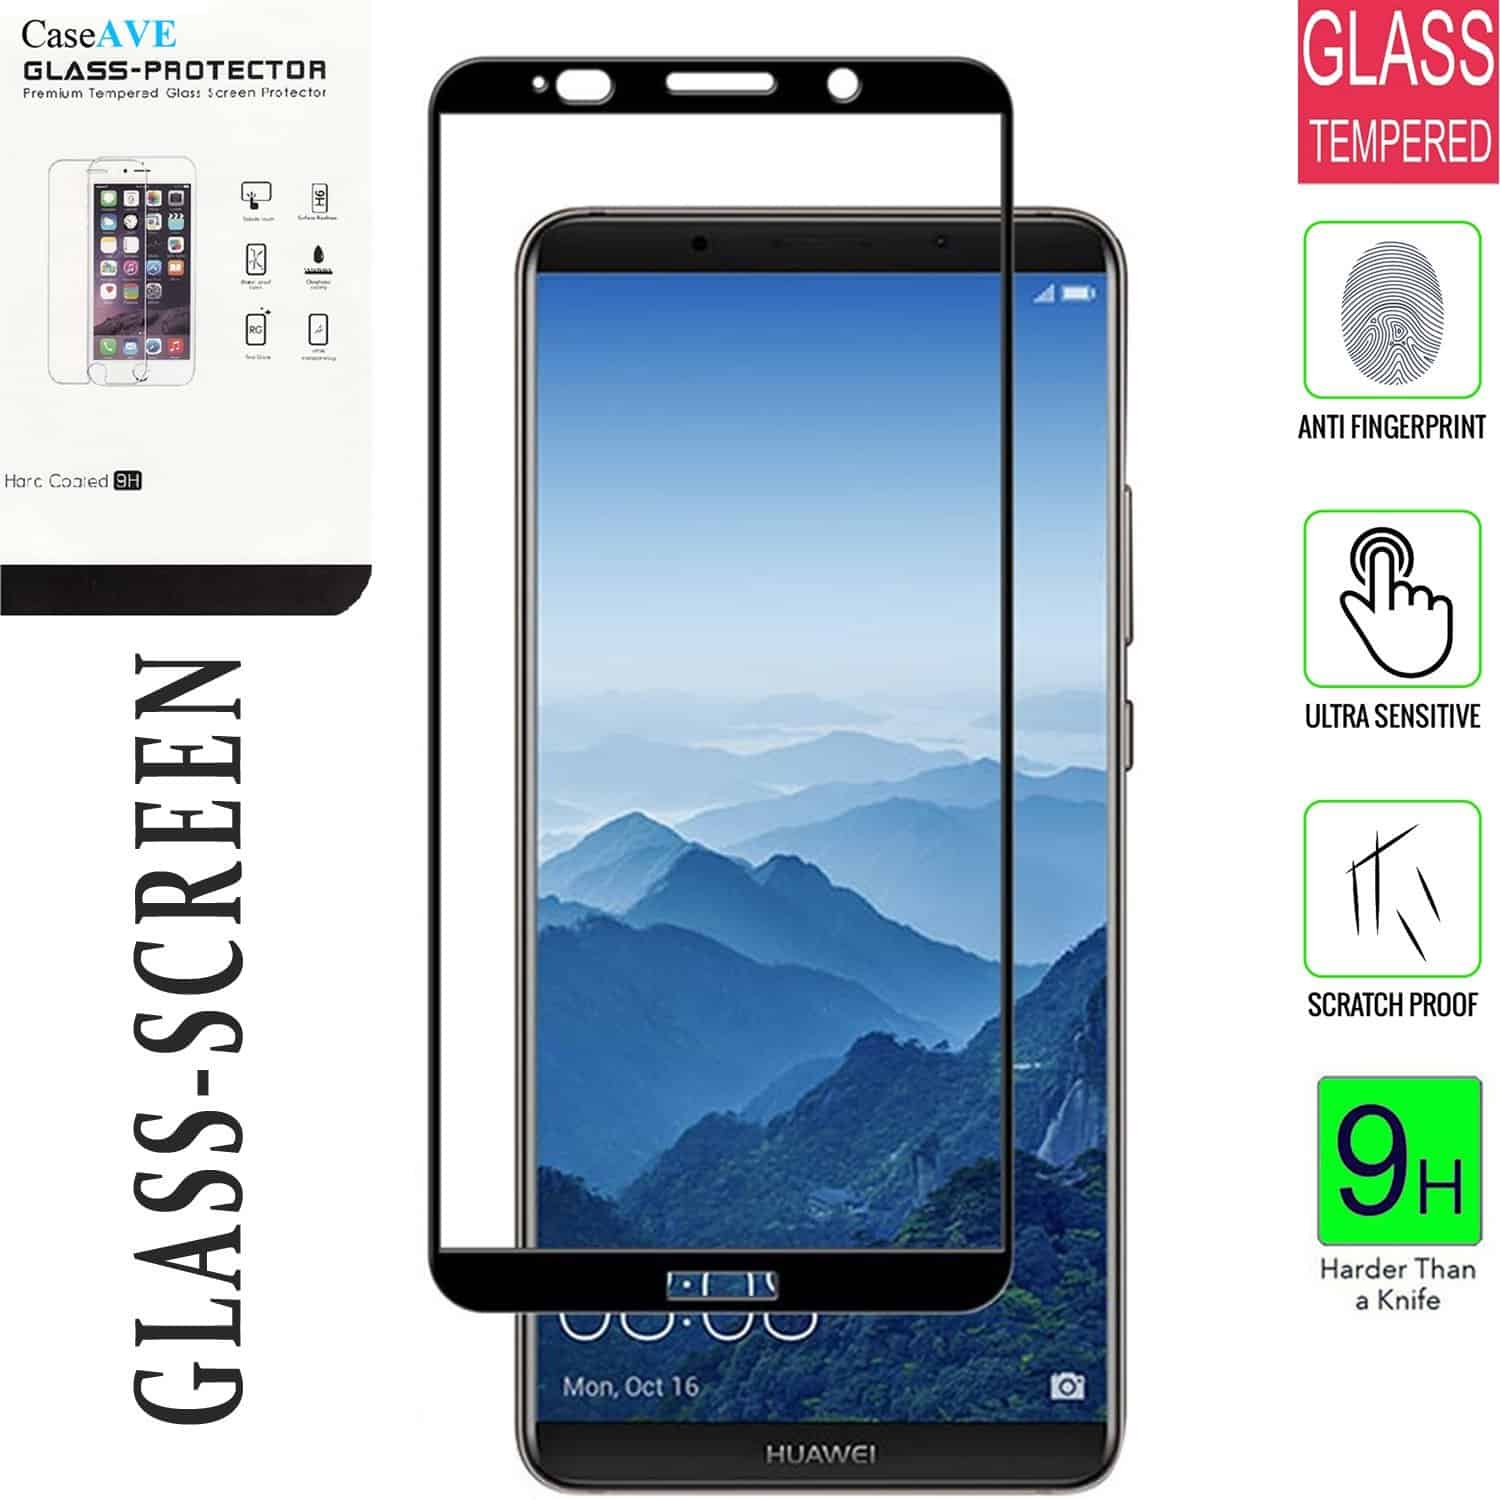 CaseAVE Tempered Glass Screen Protector